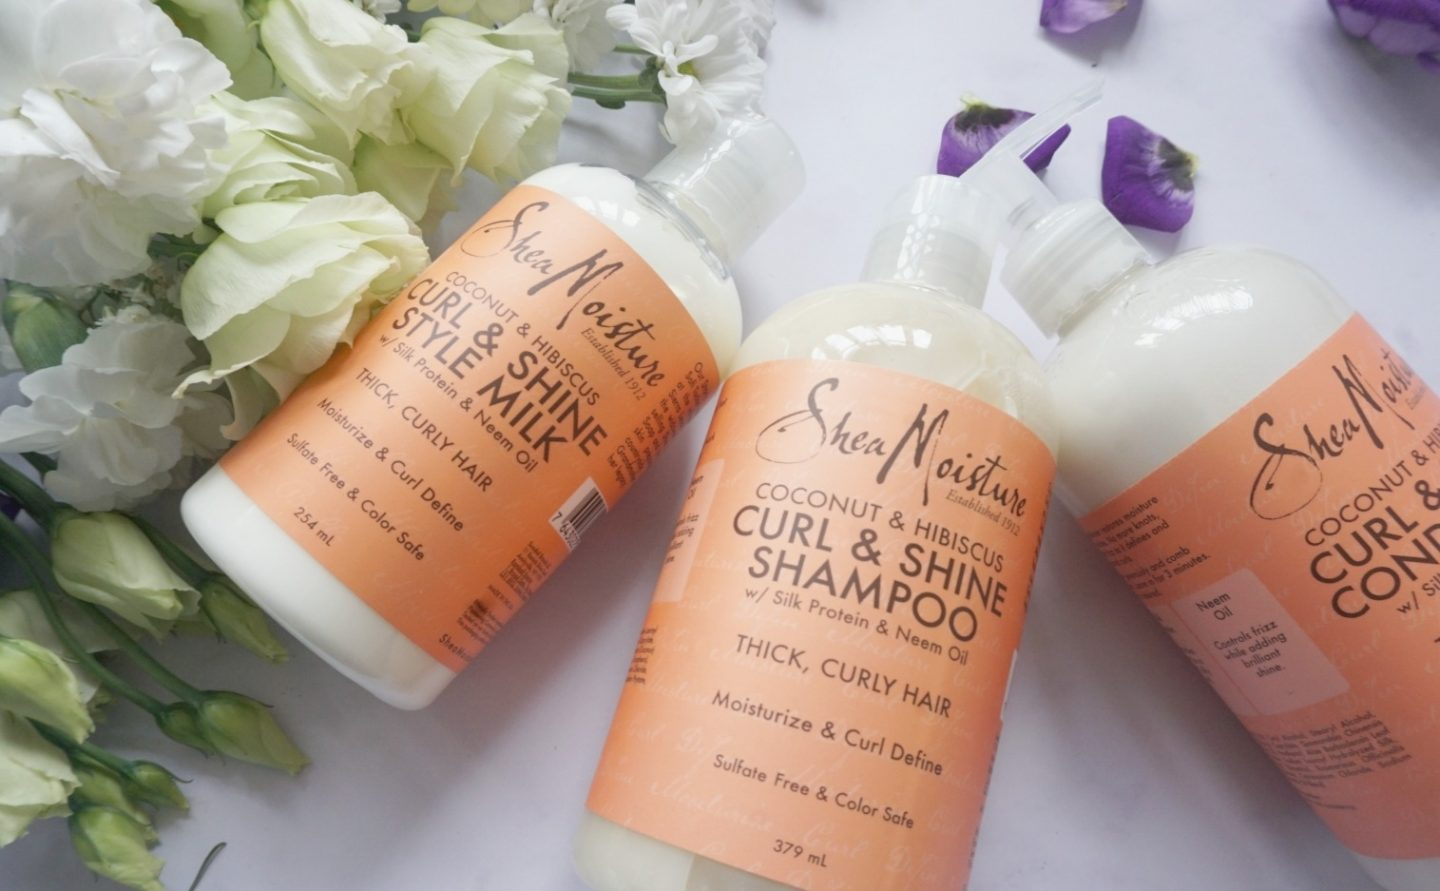 Shea Moisture curly girl uk approved www.extraordinarychaos.com